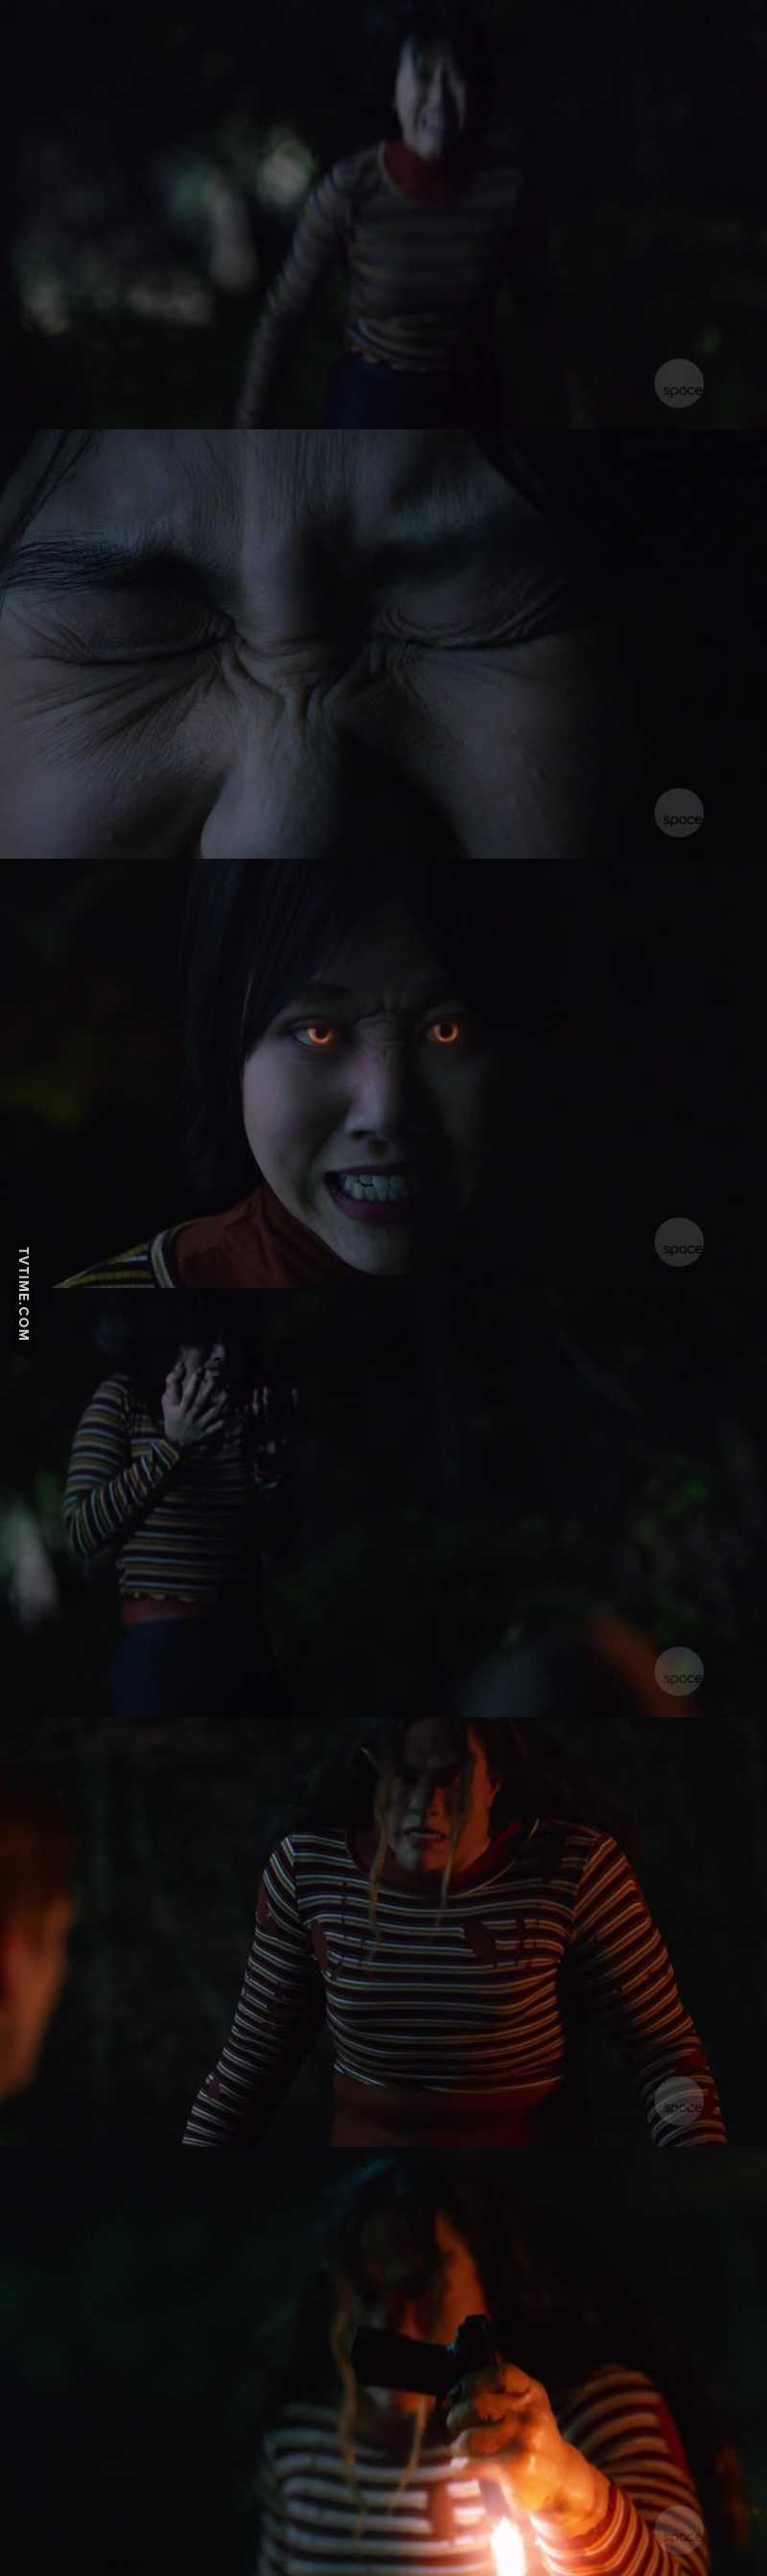 WHOAAAA! WTF? So Mona getting scratched by the Kaupe has given her the ability to transform into one when she is threatened now??? That was some freaky intense shit right there!!! Damnnnnnnnnn! 😱😱😱